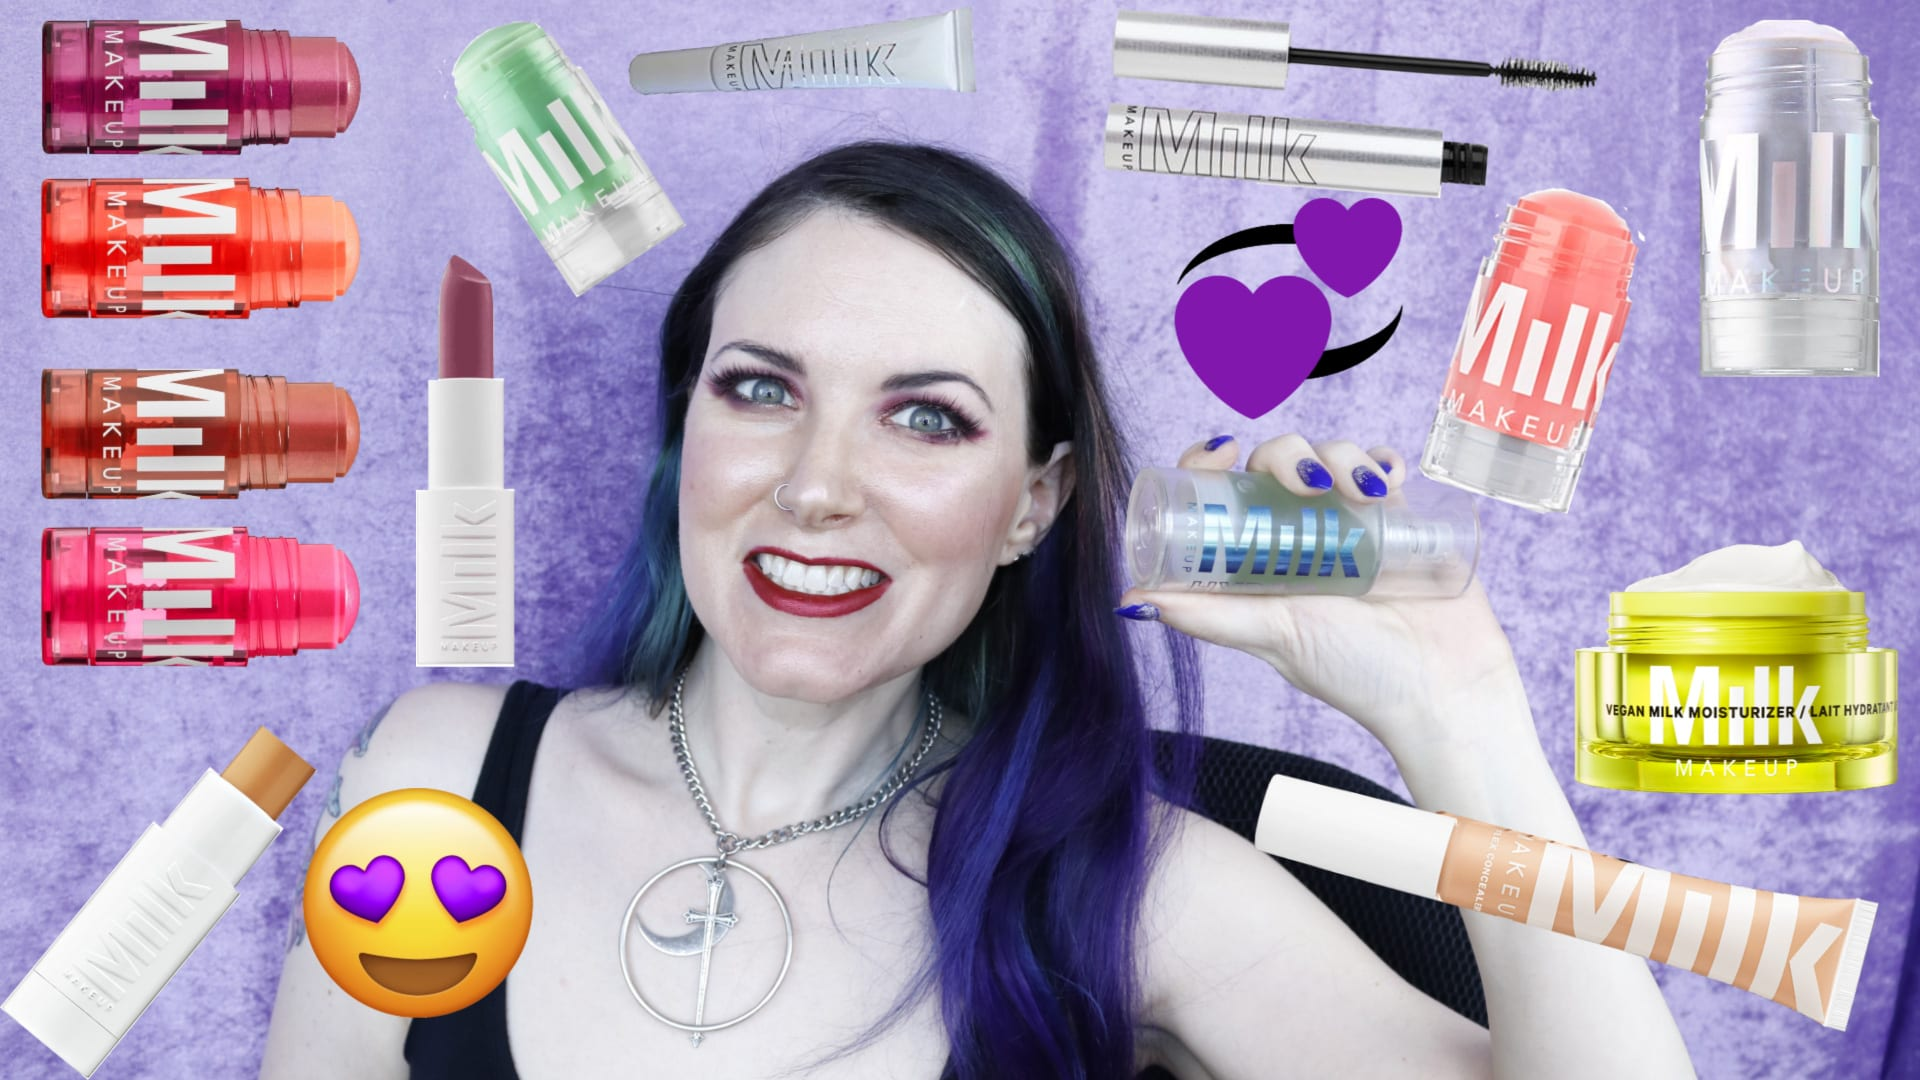 How I Fell in Love with Milk - Milk Makeup Skincare and Makeup Review